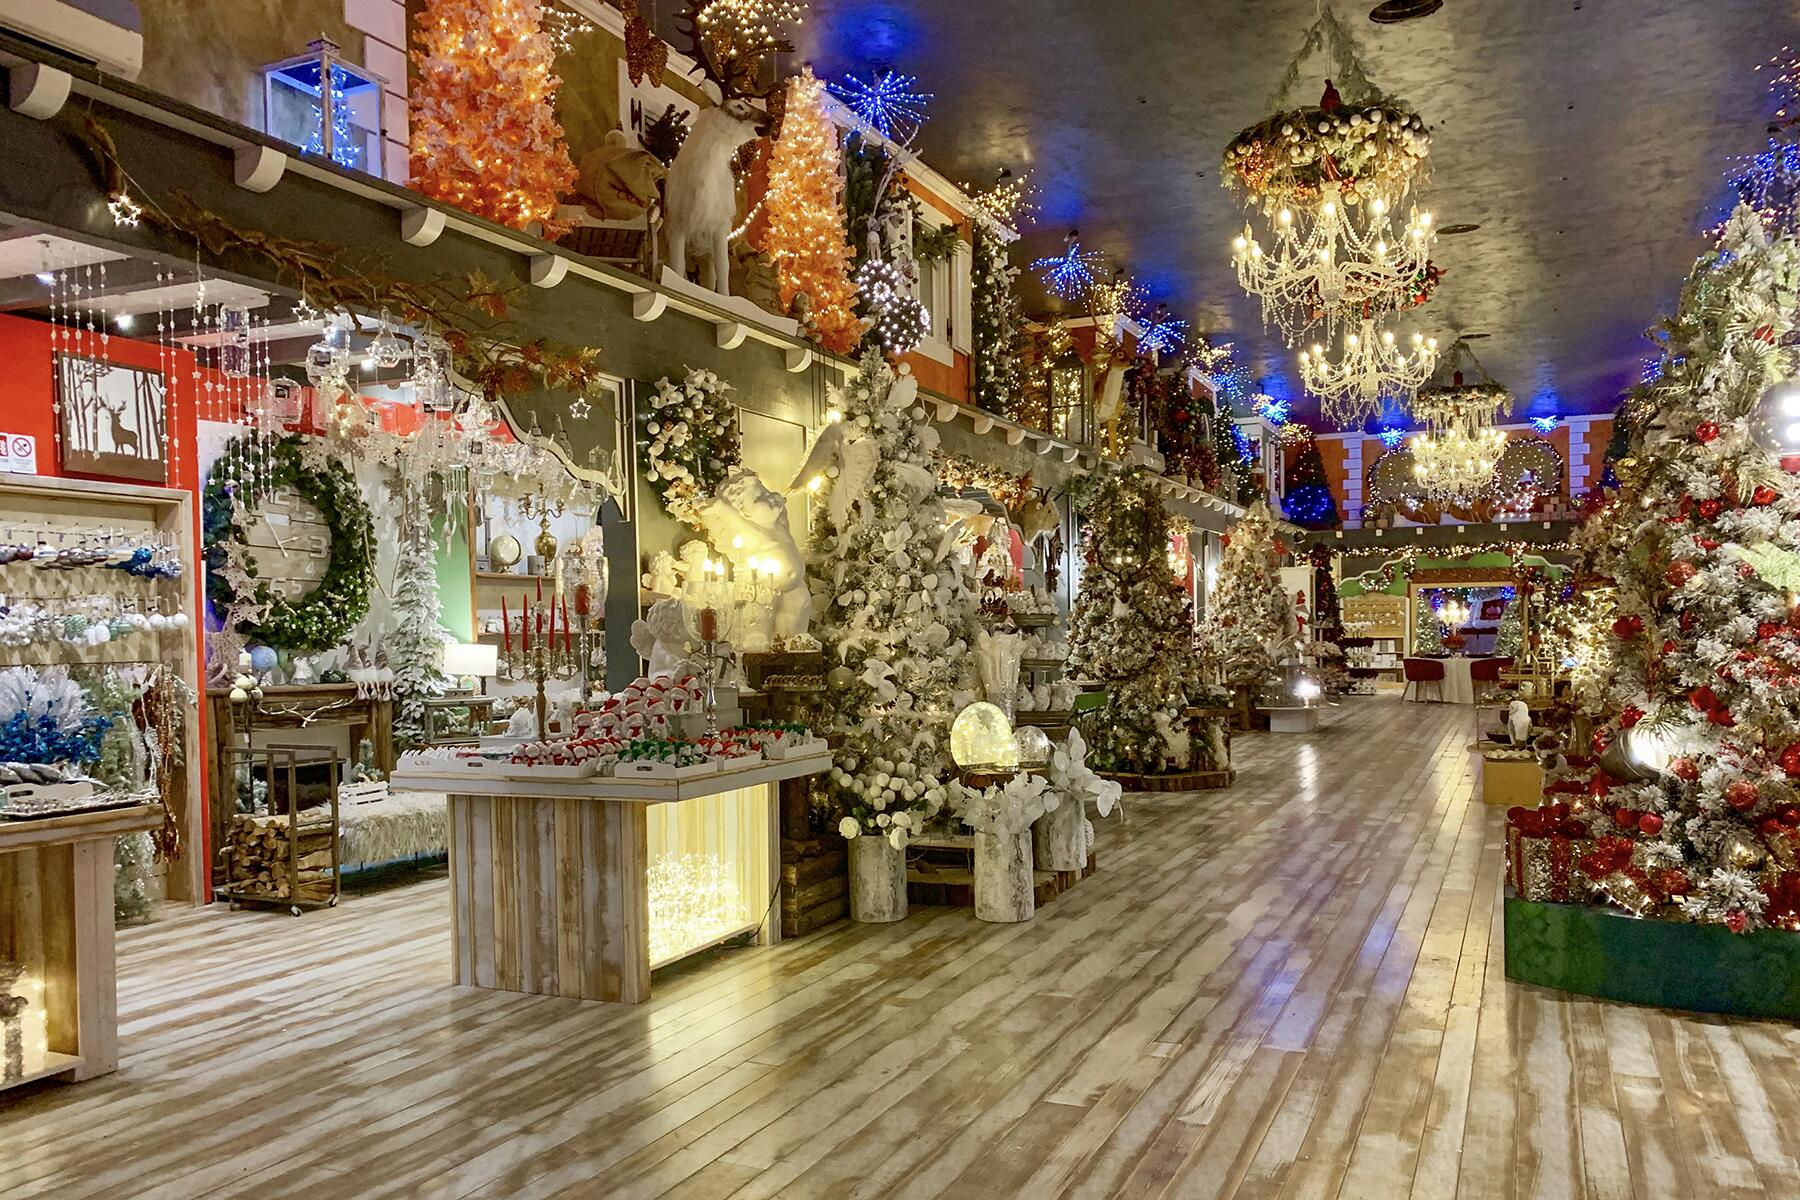 The Best Winter Holiday And Christmas Markets In Italy